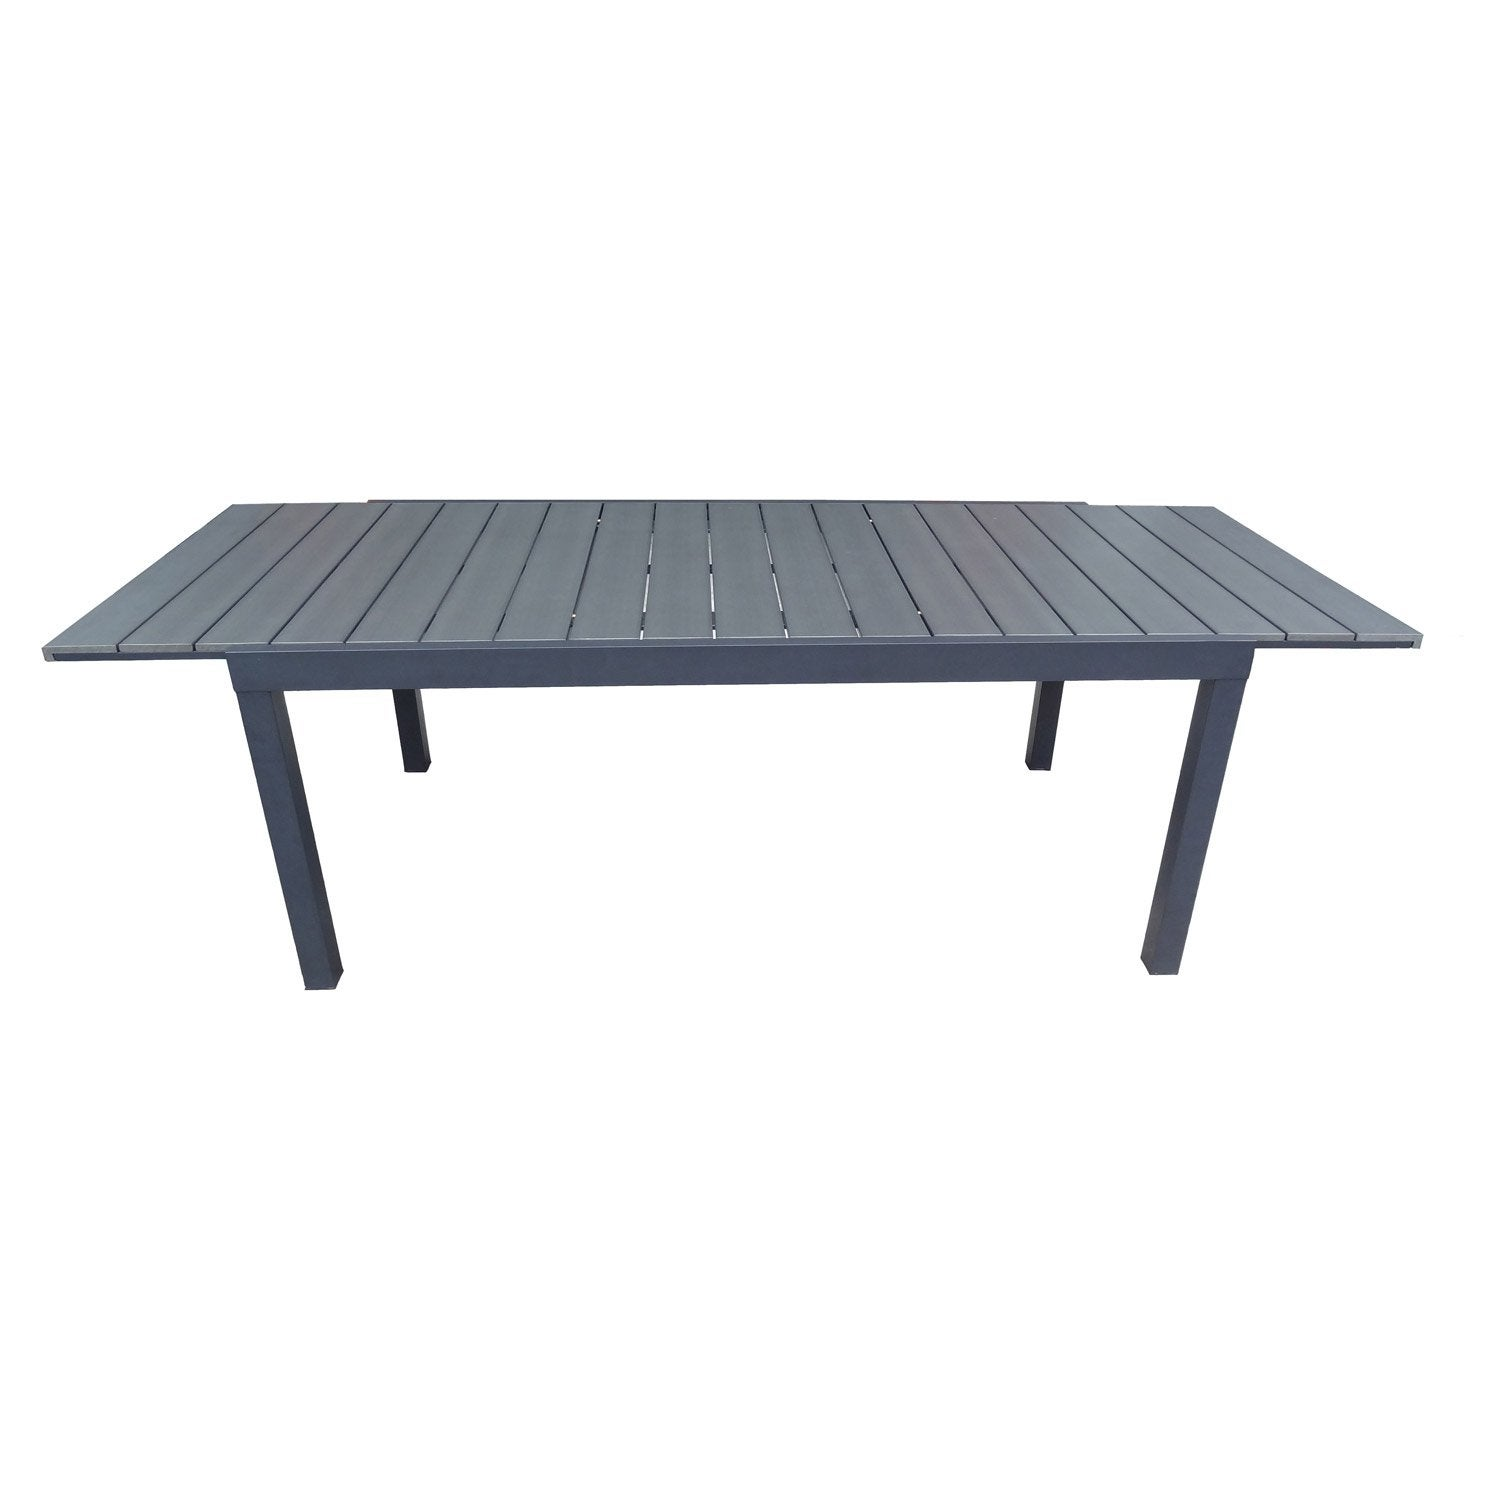 Table de jardin naterial pratt rectangulaire gris 6 for Table de 6 9